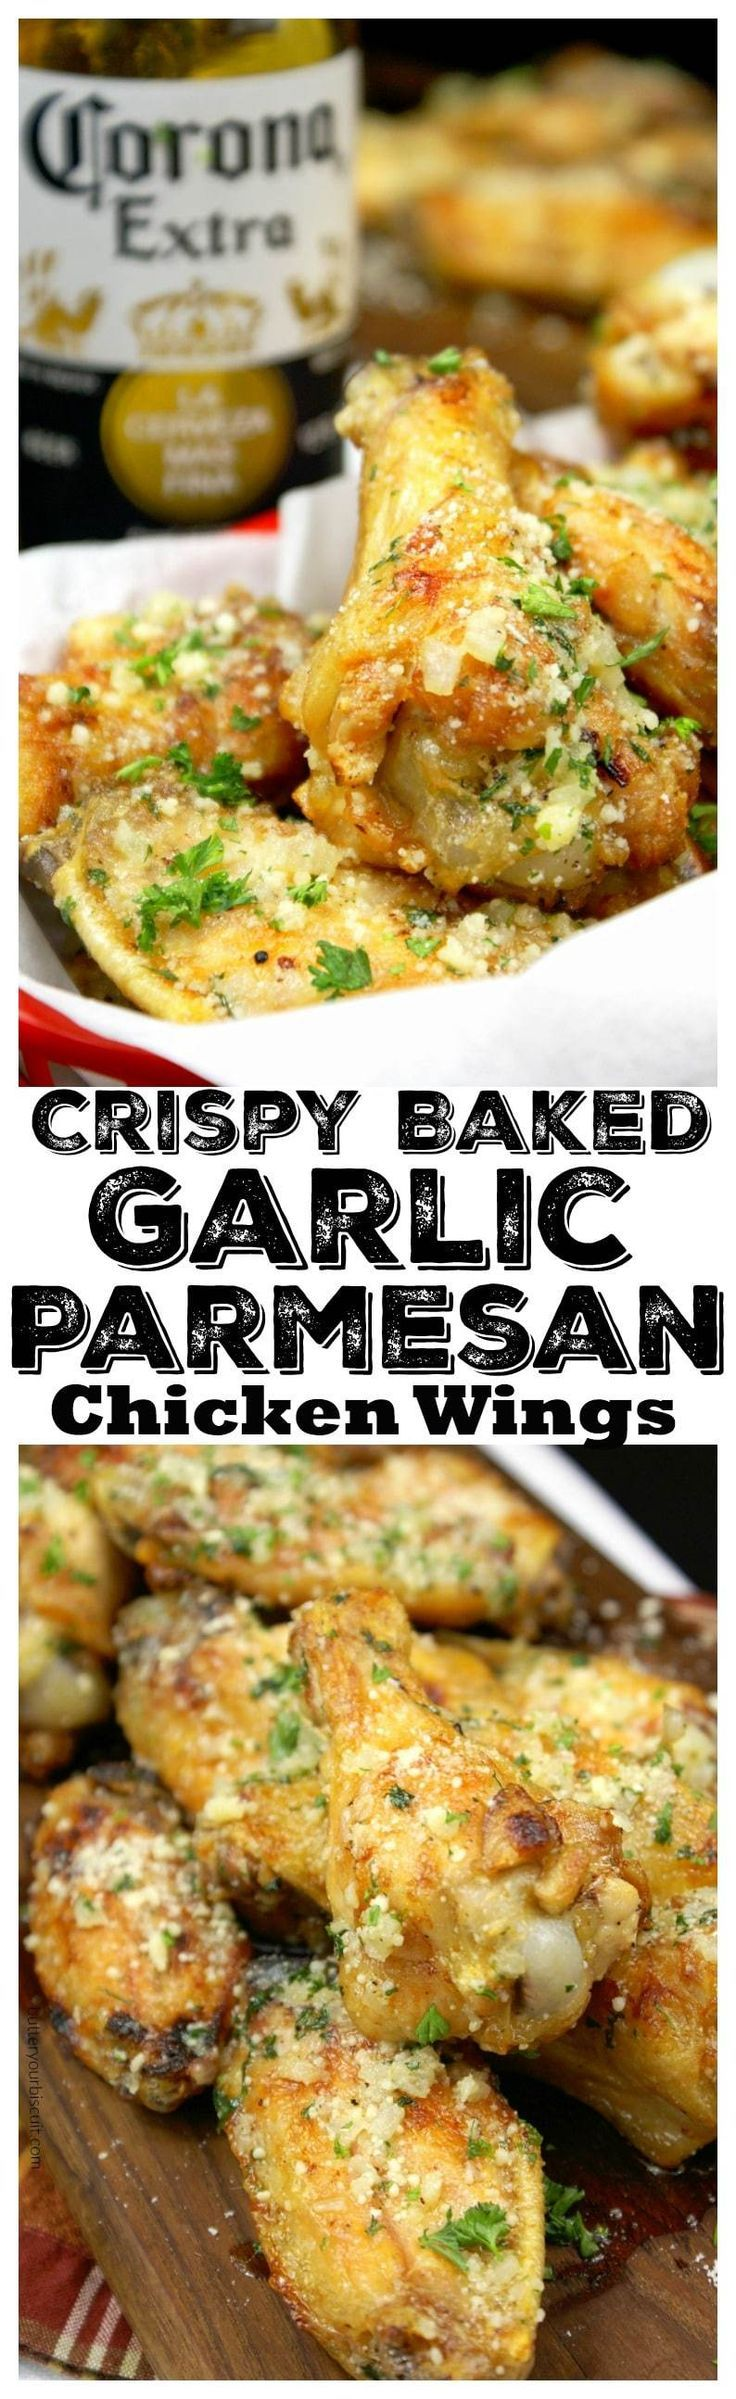 This Crispy Baked Garlic Parmesan Chicken Wings recipe are baked not fried, but you cant even tell the difference. They turn out super crispy without frying them.